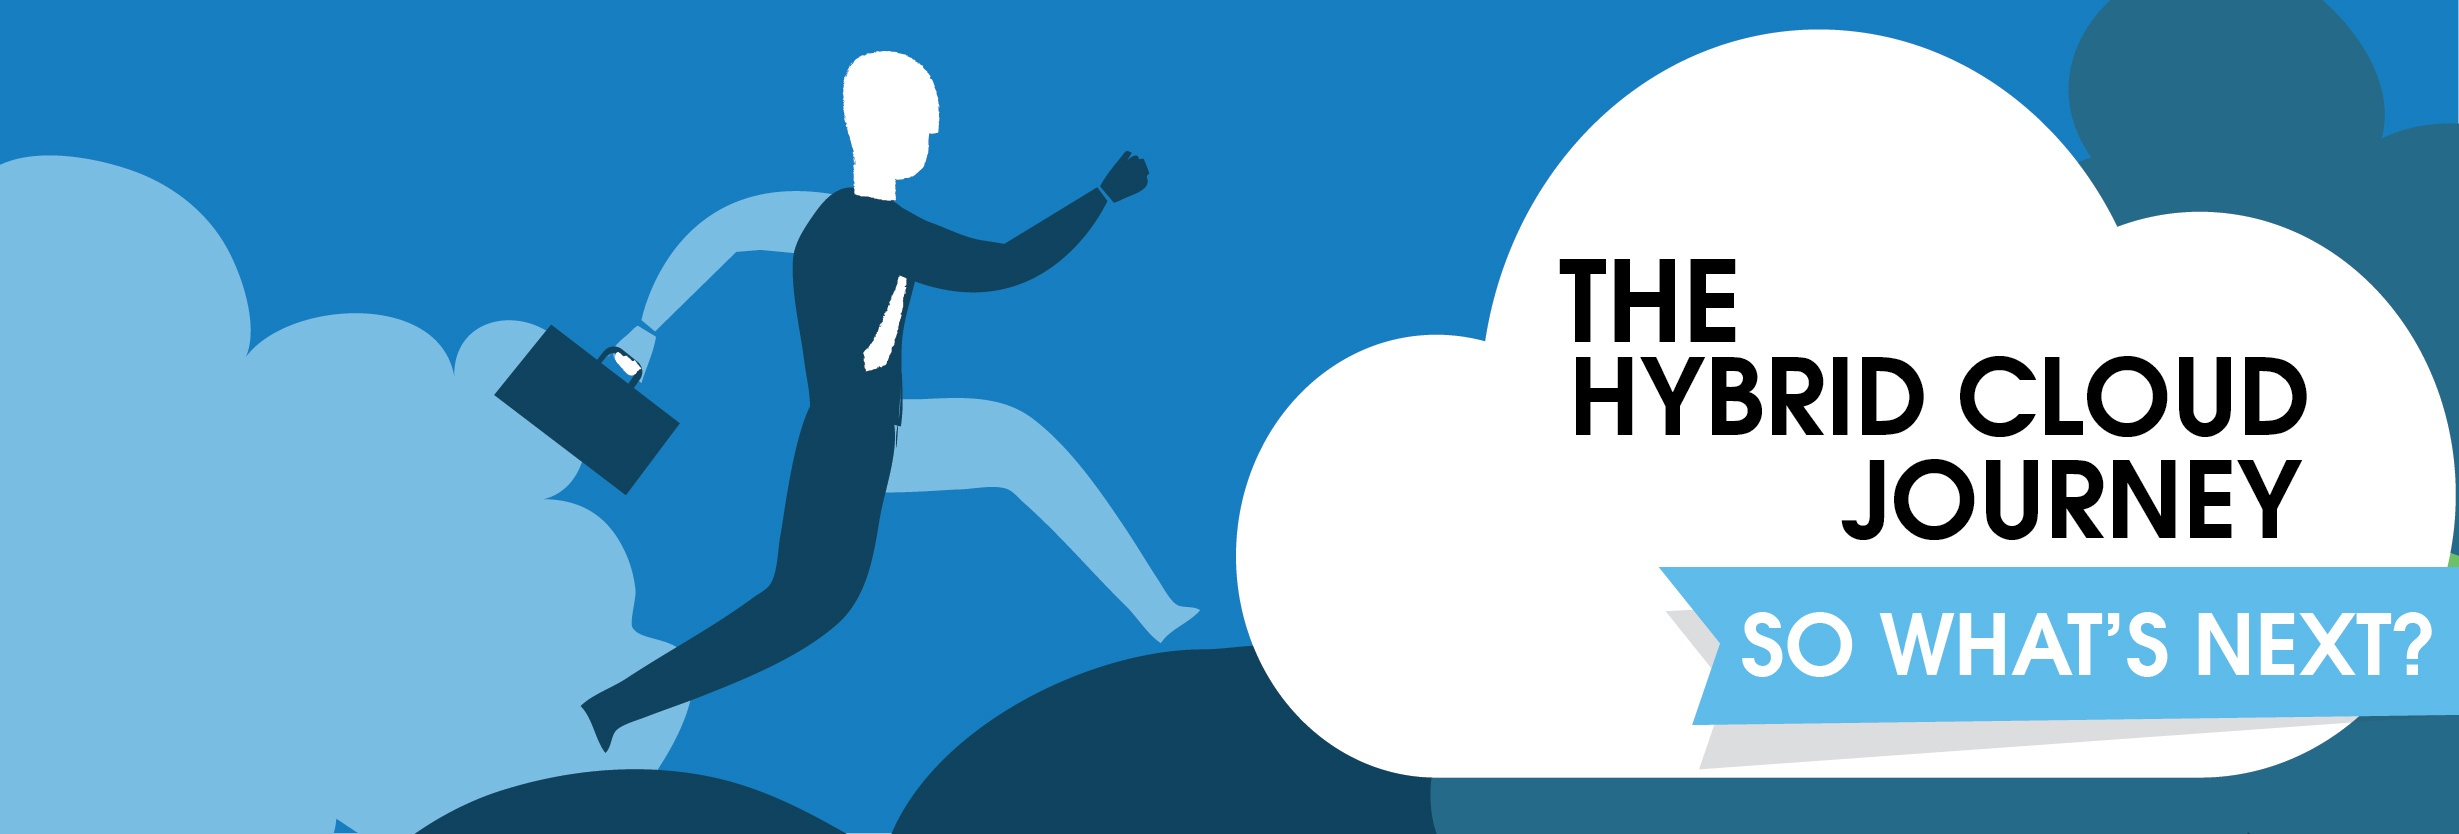 The Hybrid Cloud Journey: So What's Next? (Part 2 of 2)